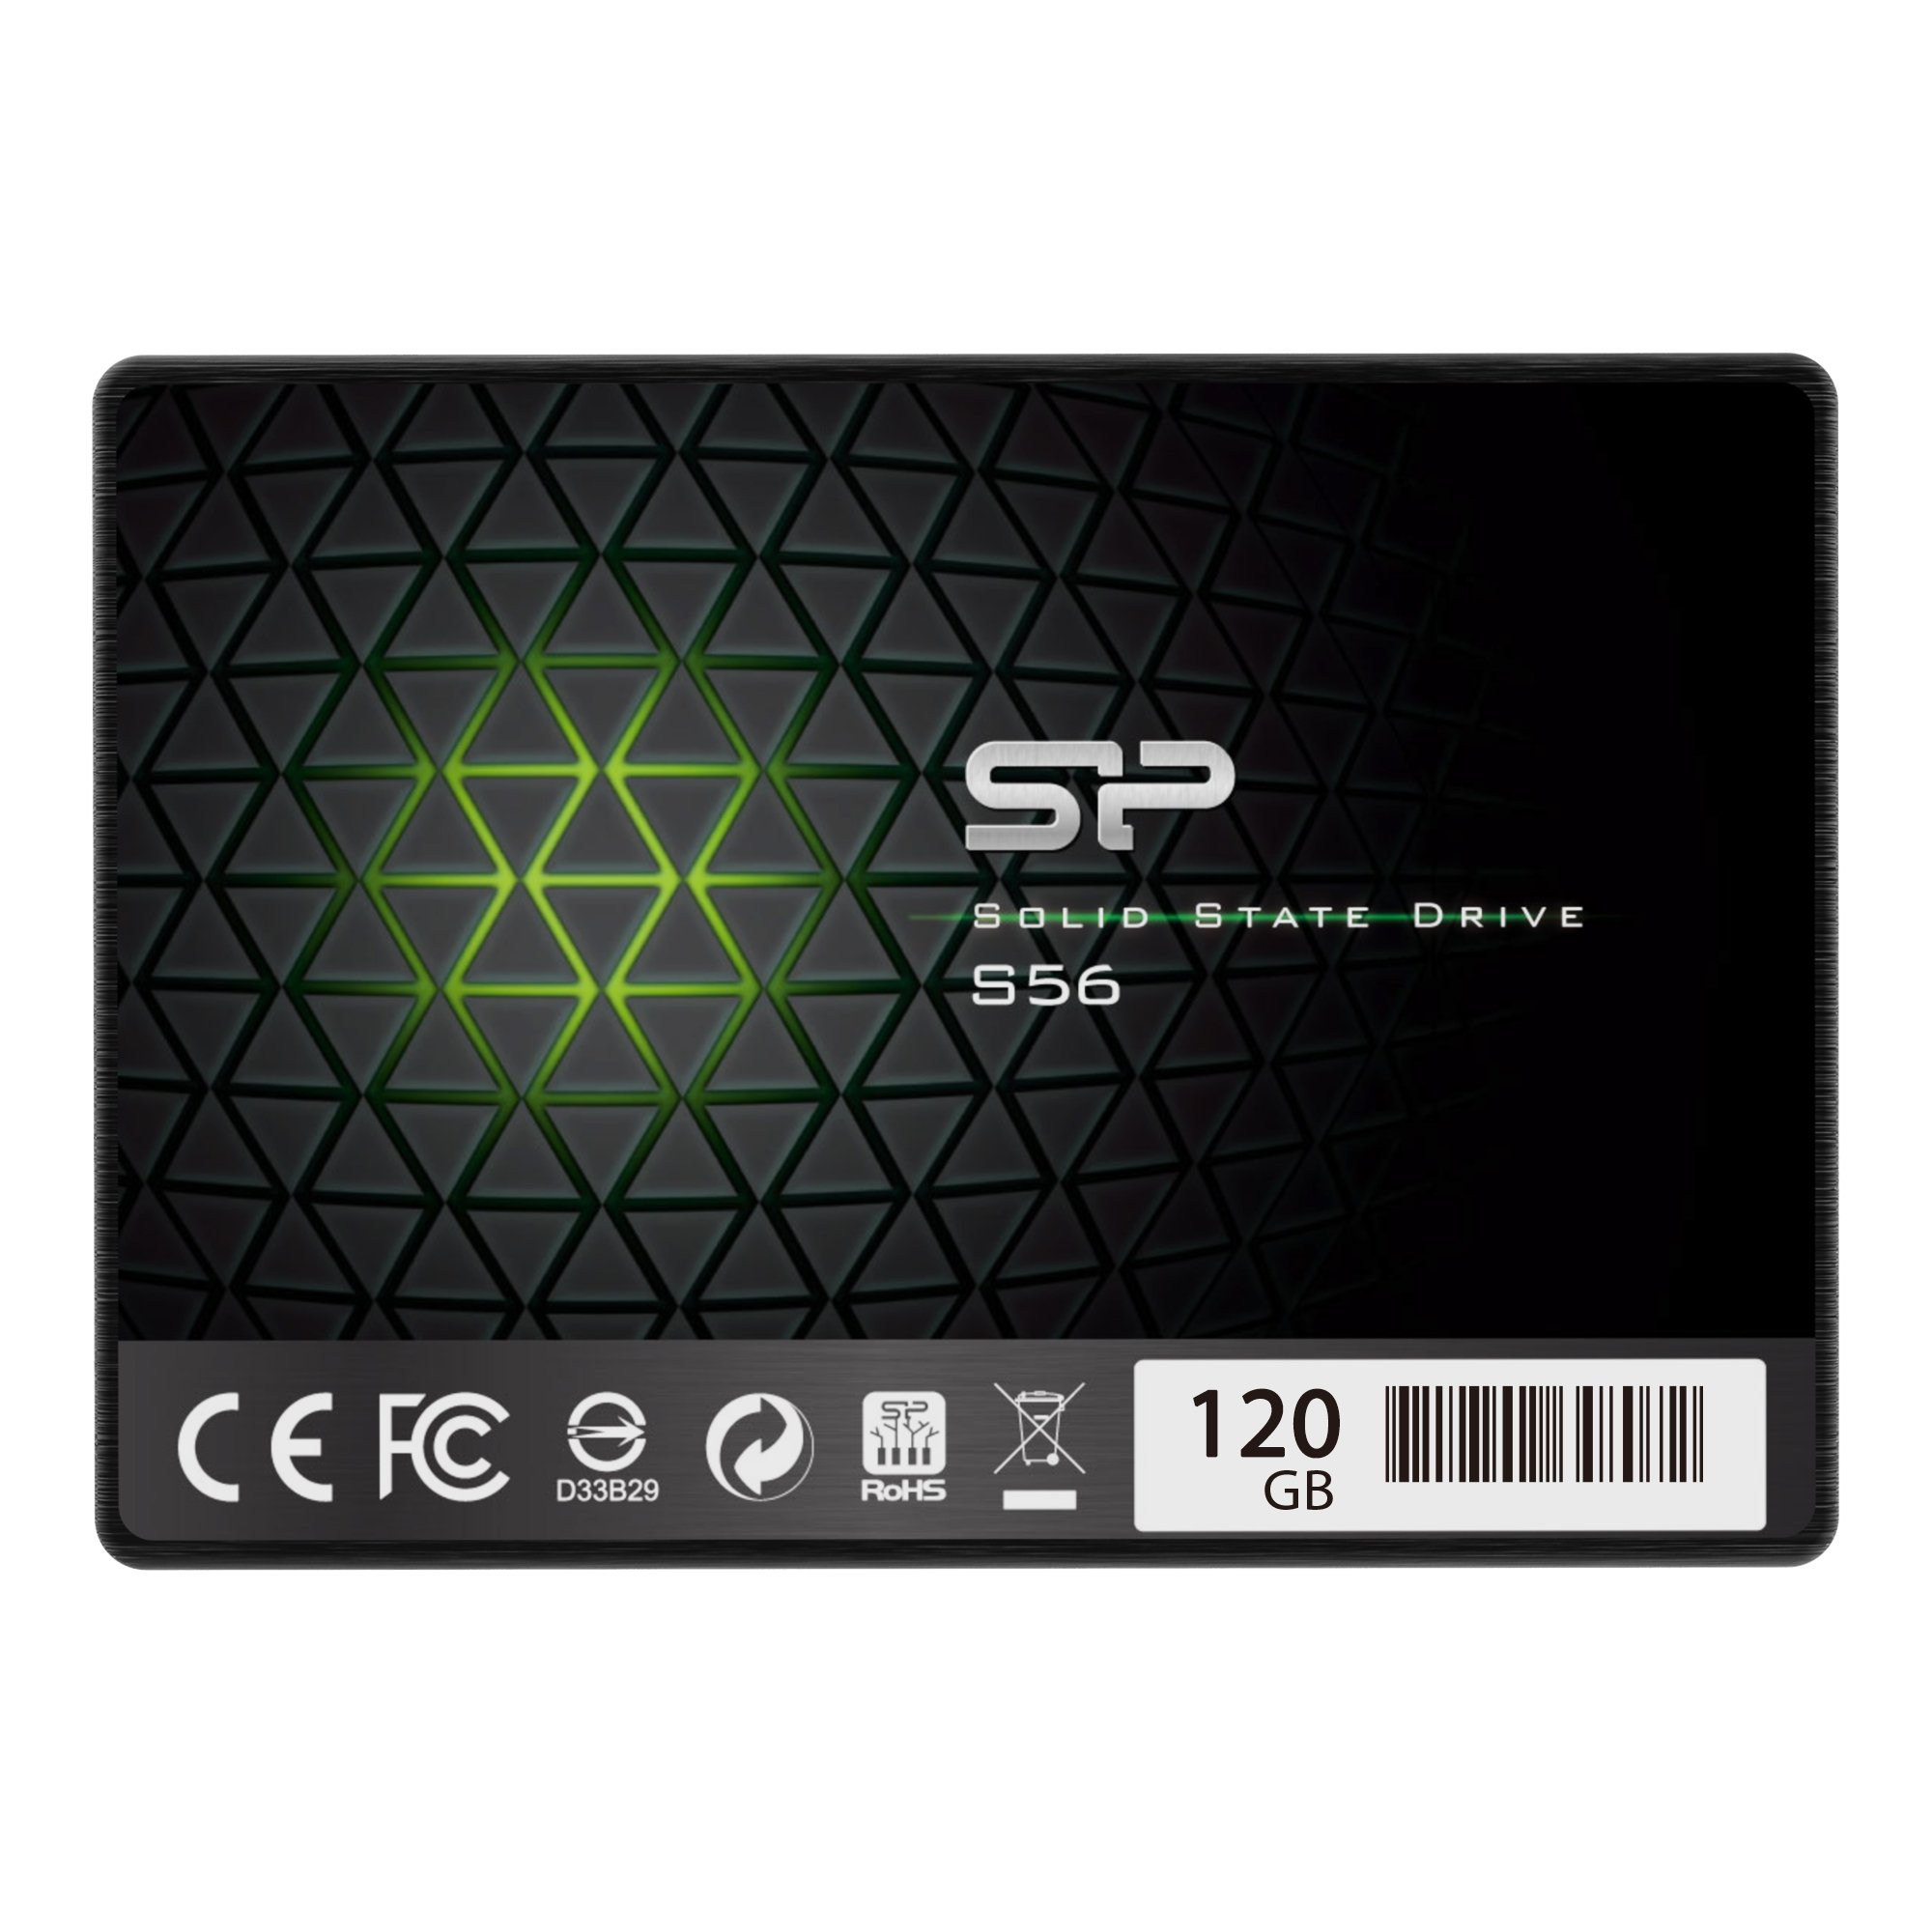 Silicon Power 120GB SSD 3D NAND with R/W up to 560/530MB/s S56 SLC Cache Performance Boost SATA III 2.5'' 7mm (0.28'') Internal Solid State Drive (SP120GBSS3S56B25AZ)